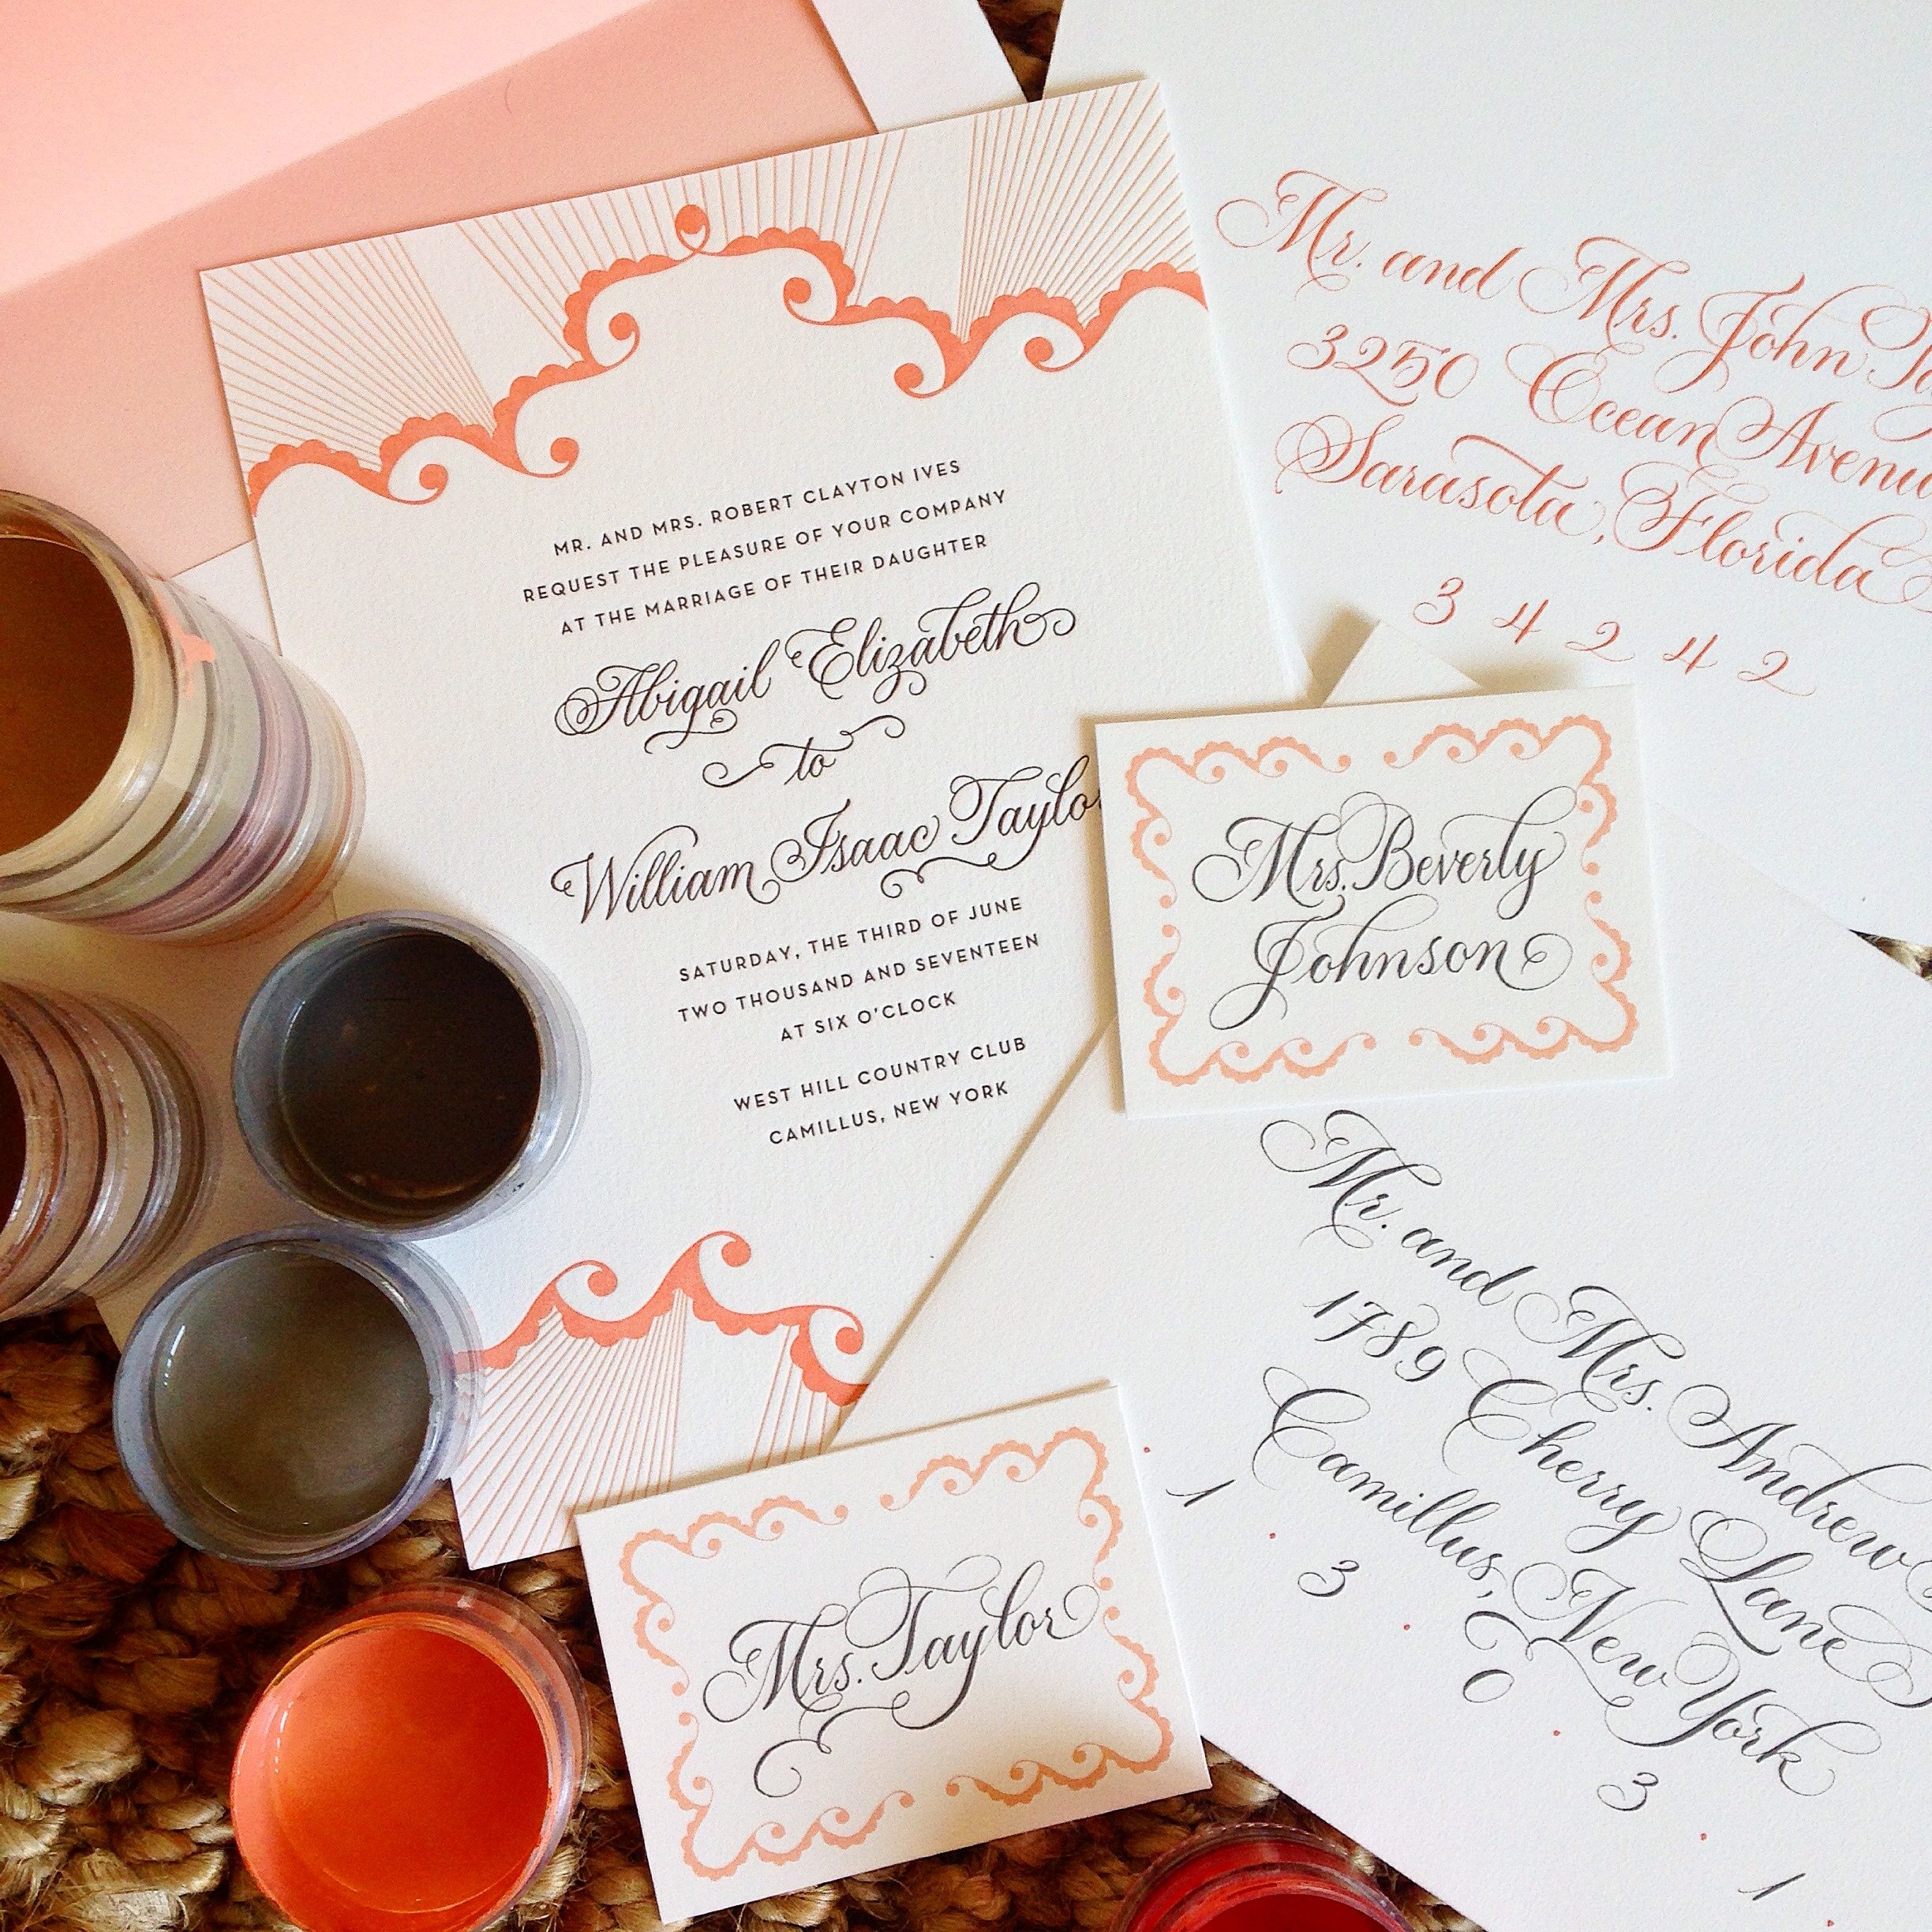 Calligraphy addressing for wedding invitation envelopes and more sarah hanna of sarah hanna calligraphy 10 inner outer envelope calligraphy or 7 for outer envelope only for bella figura brides monicamarmolfo Images